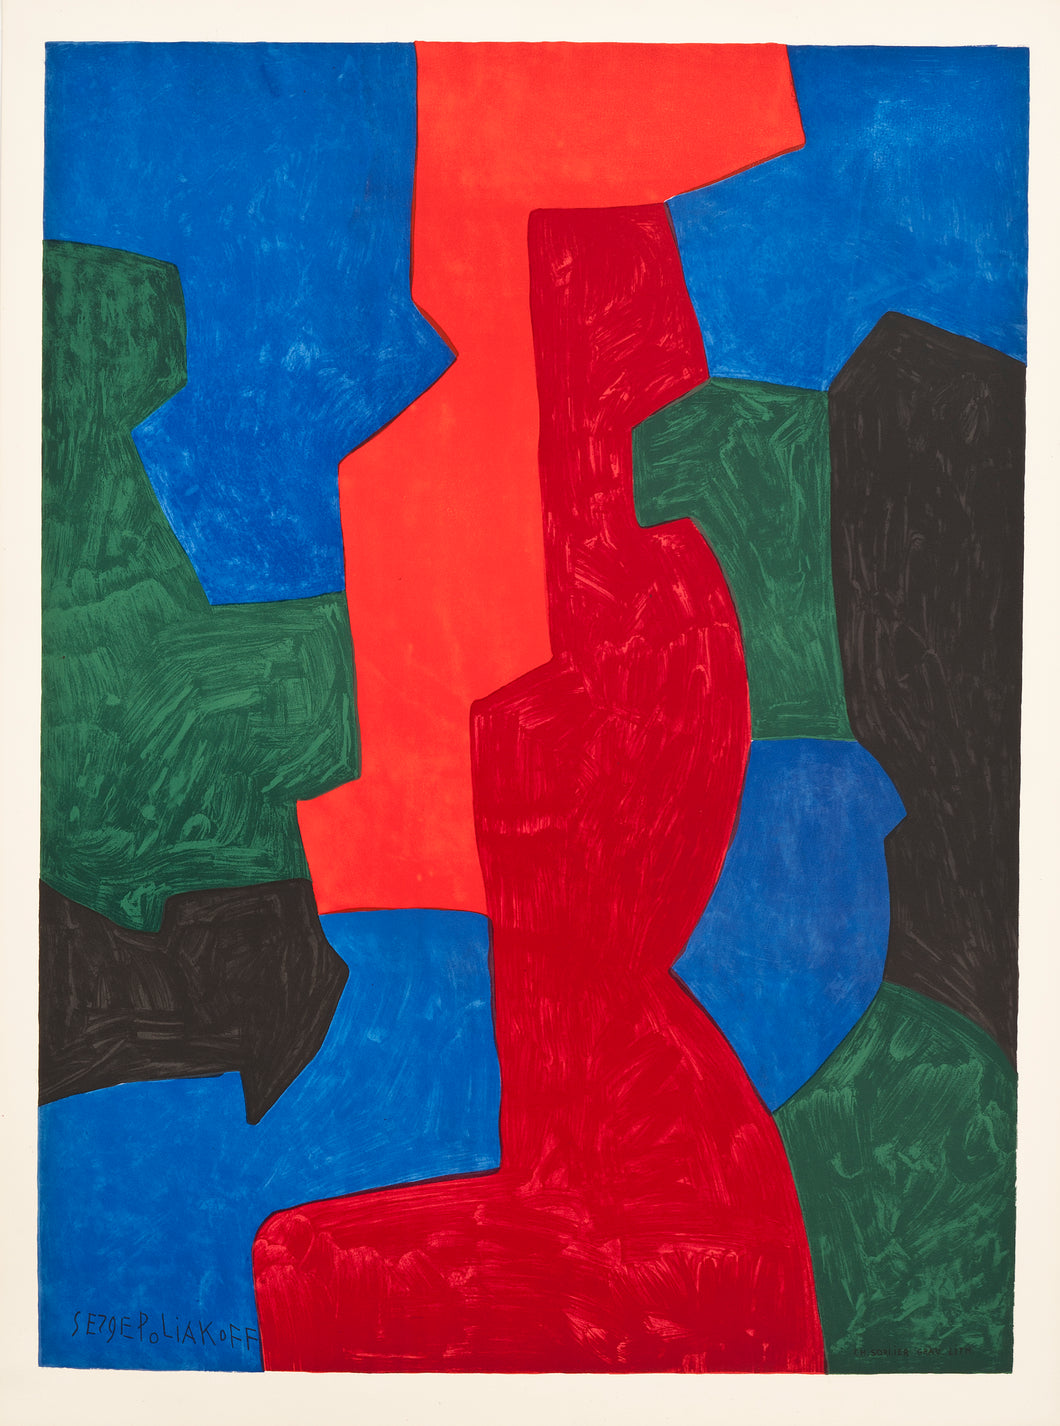 Untitled by Serge Poliakoff, 1975